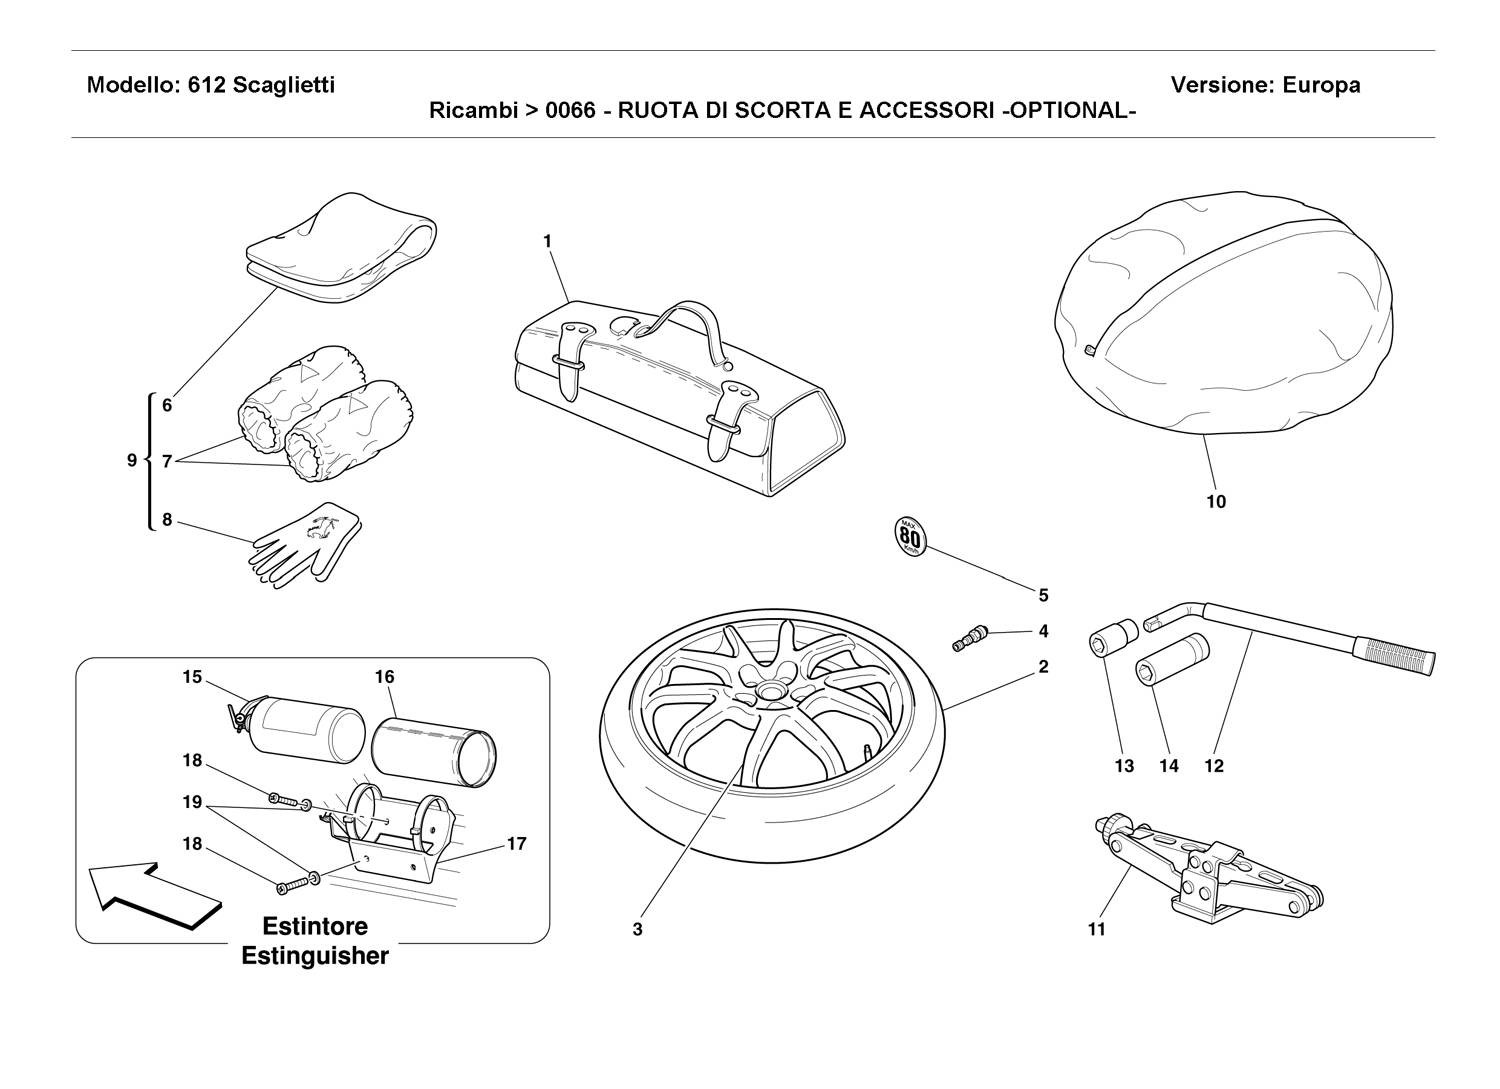 SPARE WHEEL AND ACCESSORIES -OPTIONAL-